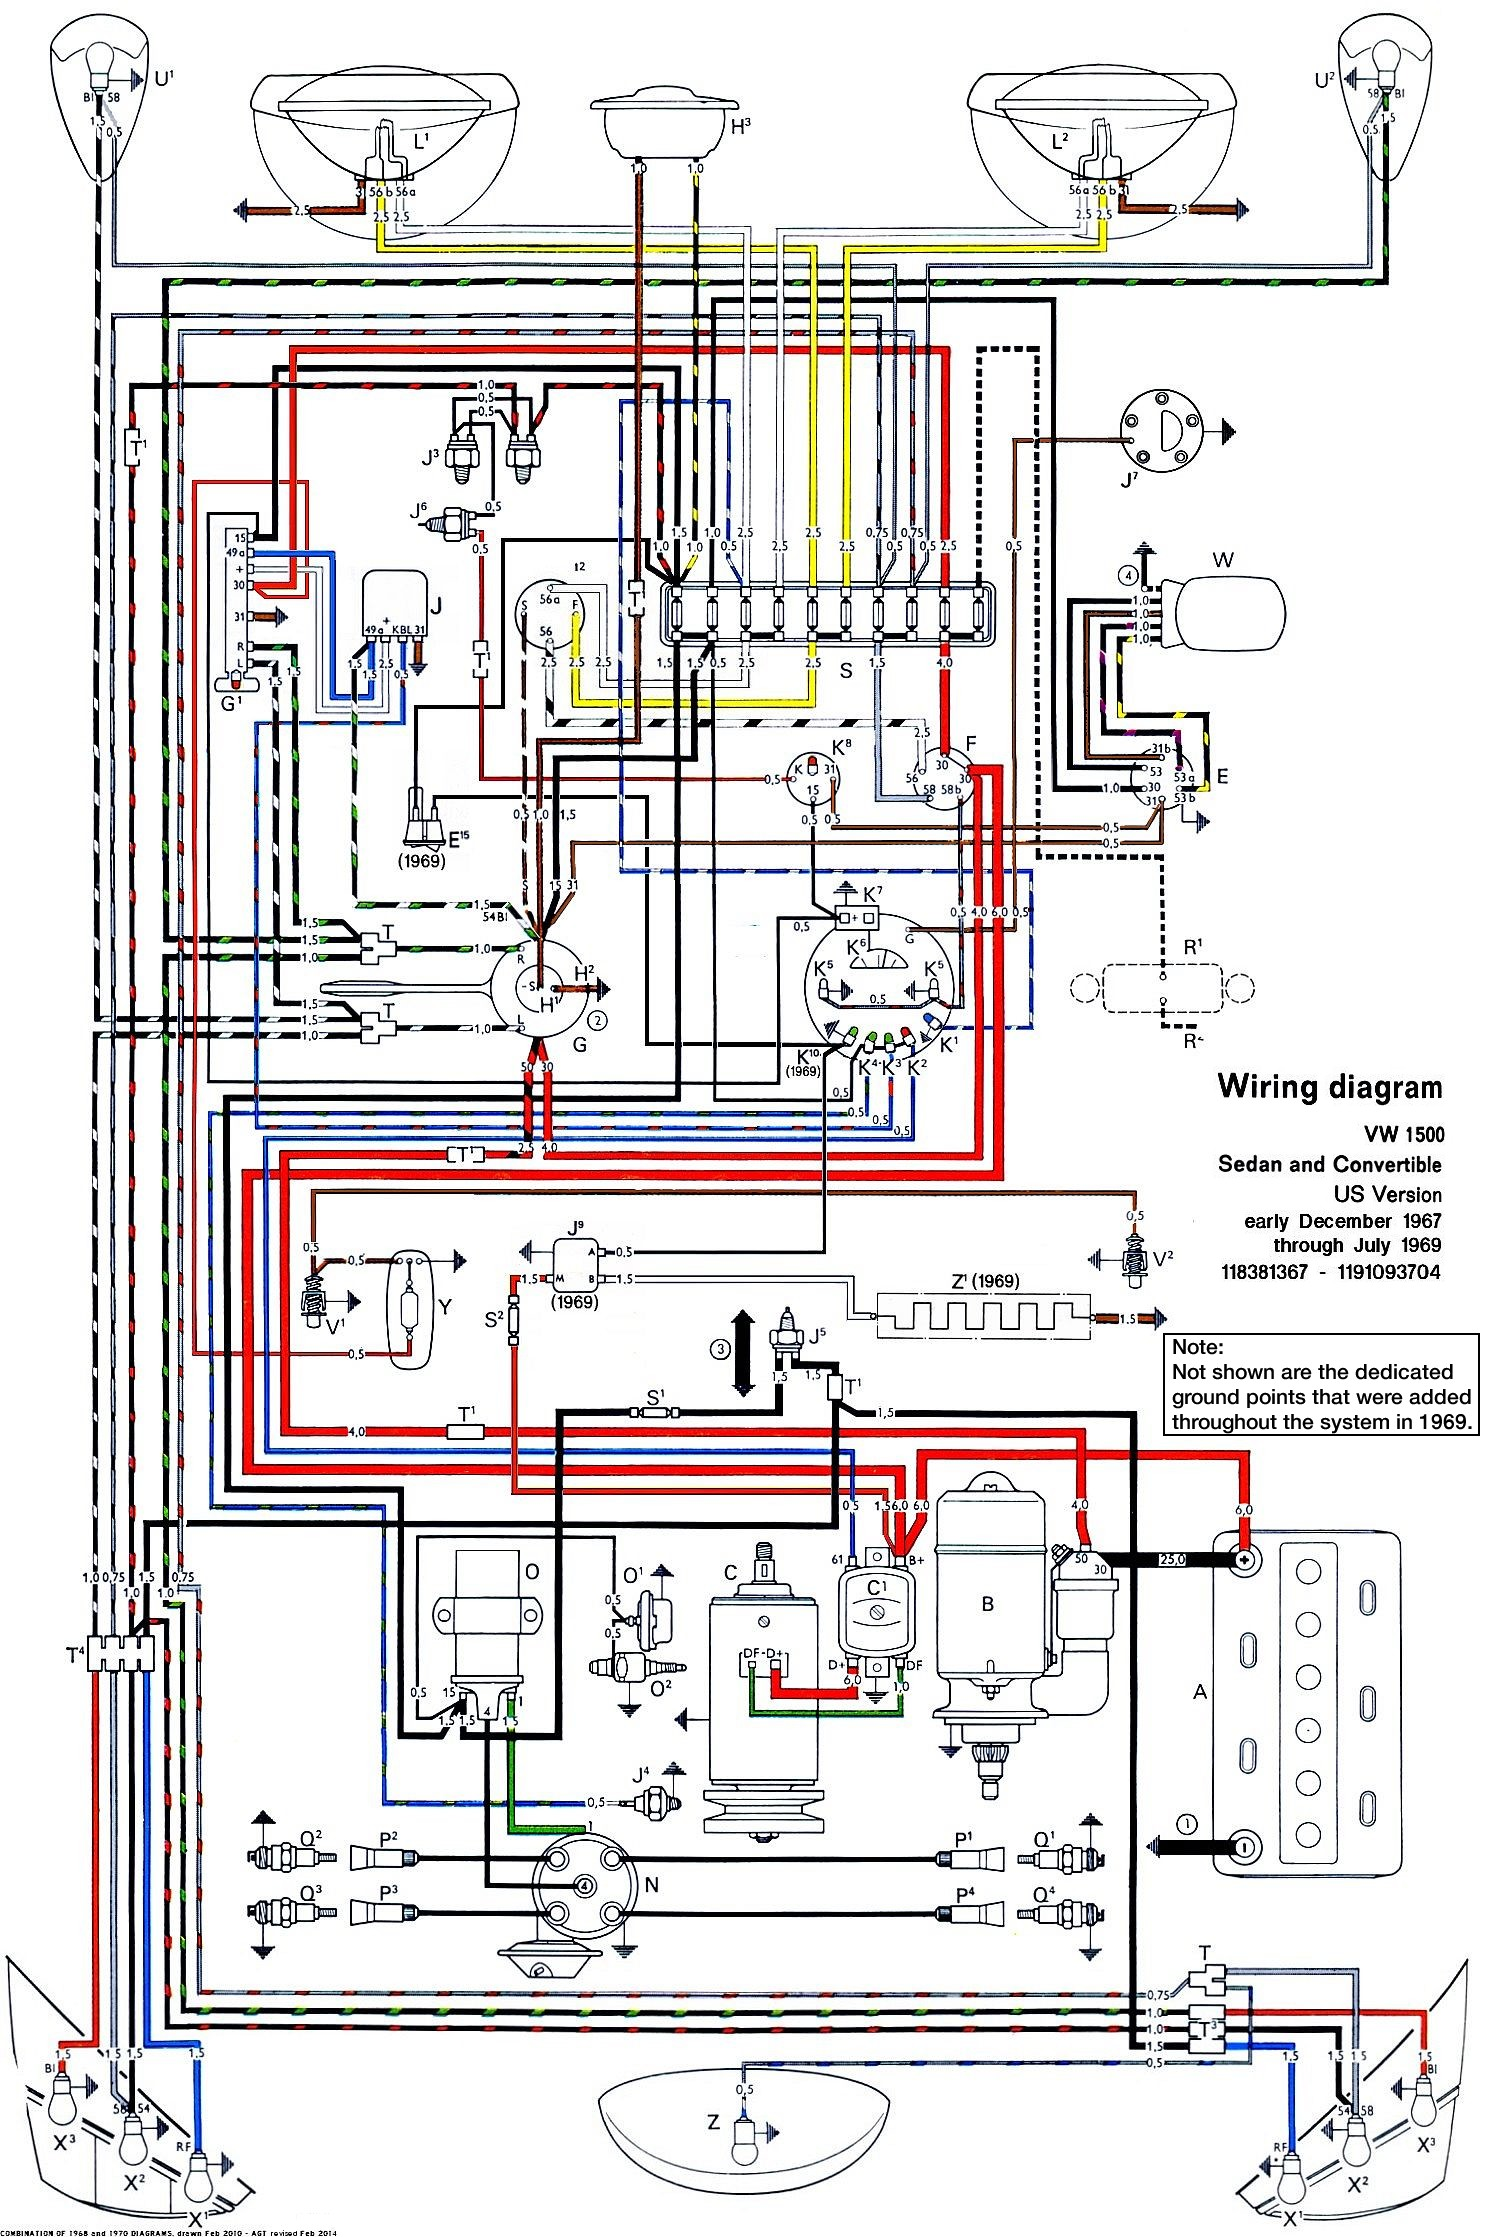 Vw Beetle Wiring Diagram Light Opinions About 1971 Super Auto Shift Wire Rewiring A Classic Bug Yahoo Answers 1970 Tail 1974